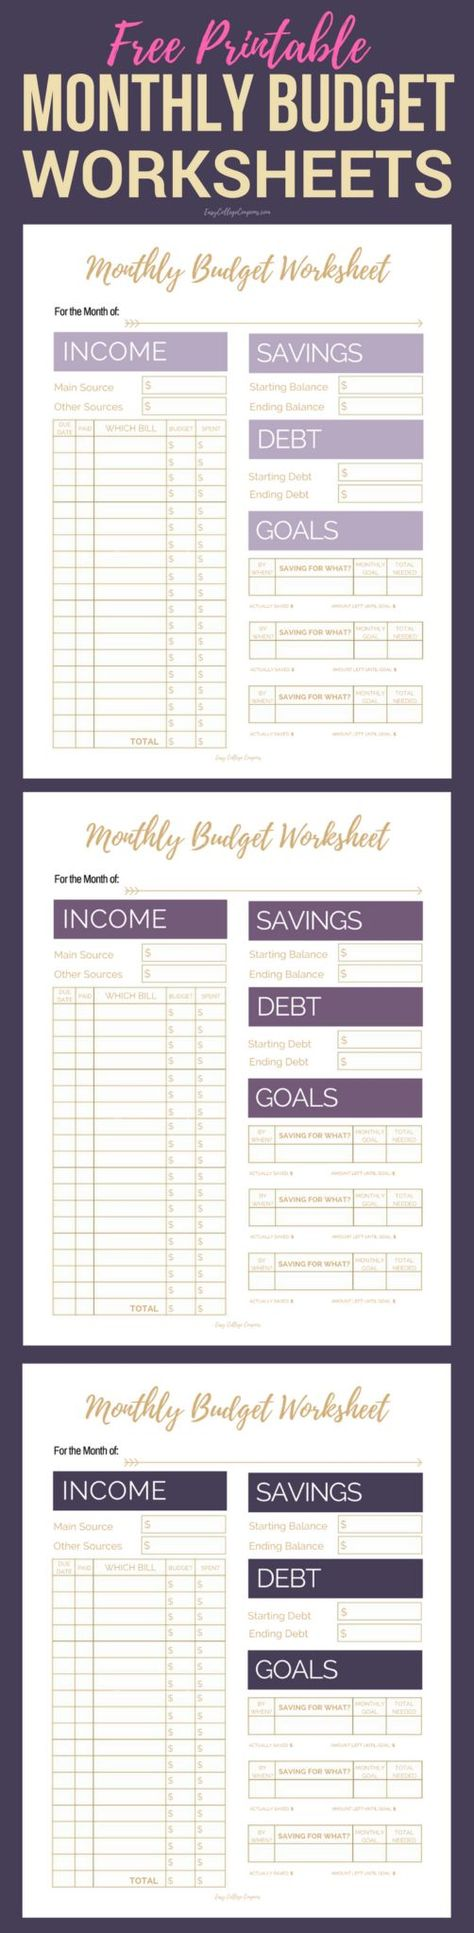 Worksheets Interactive Budget Worksheet best 25 budget forms ideas on pinterest free planner monthly template and printable